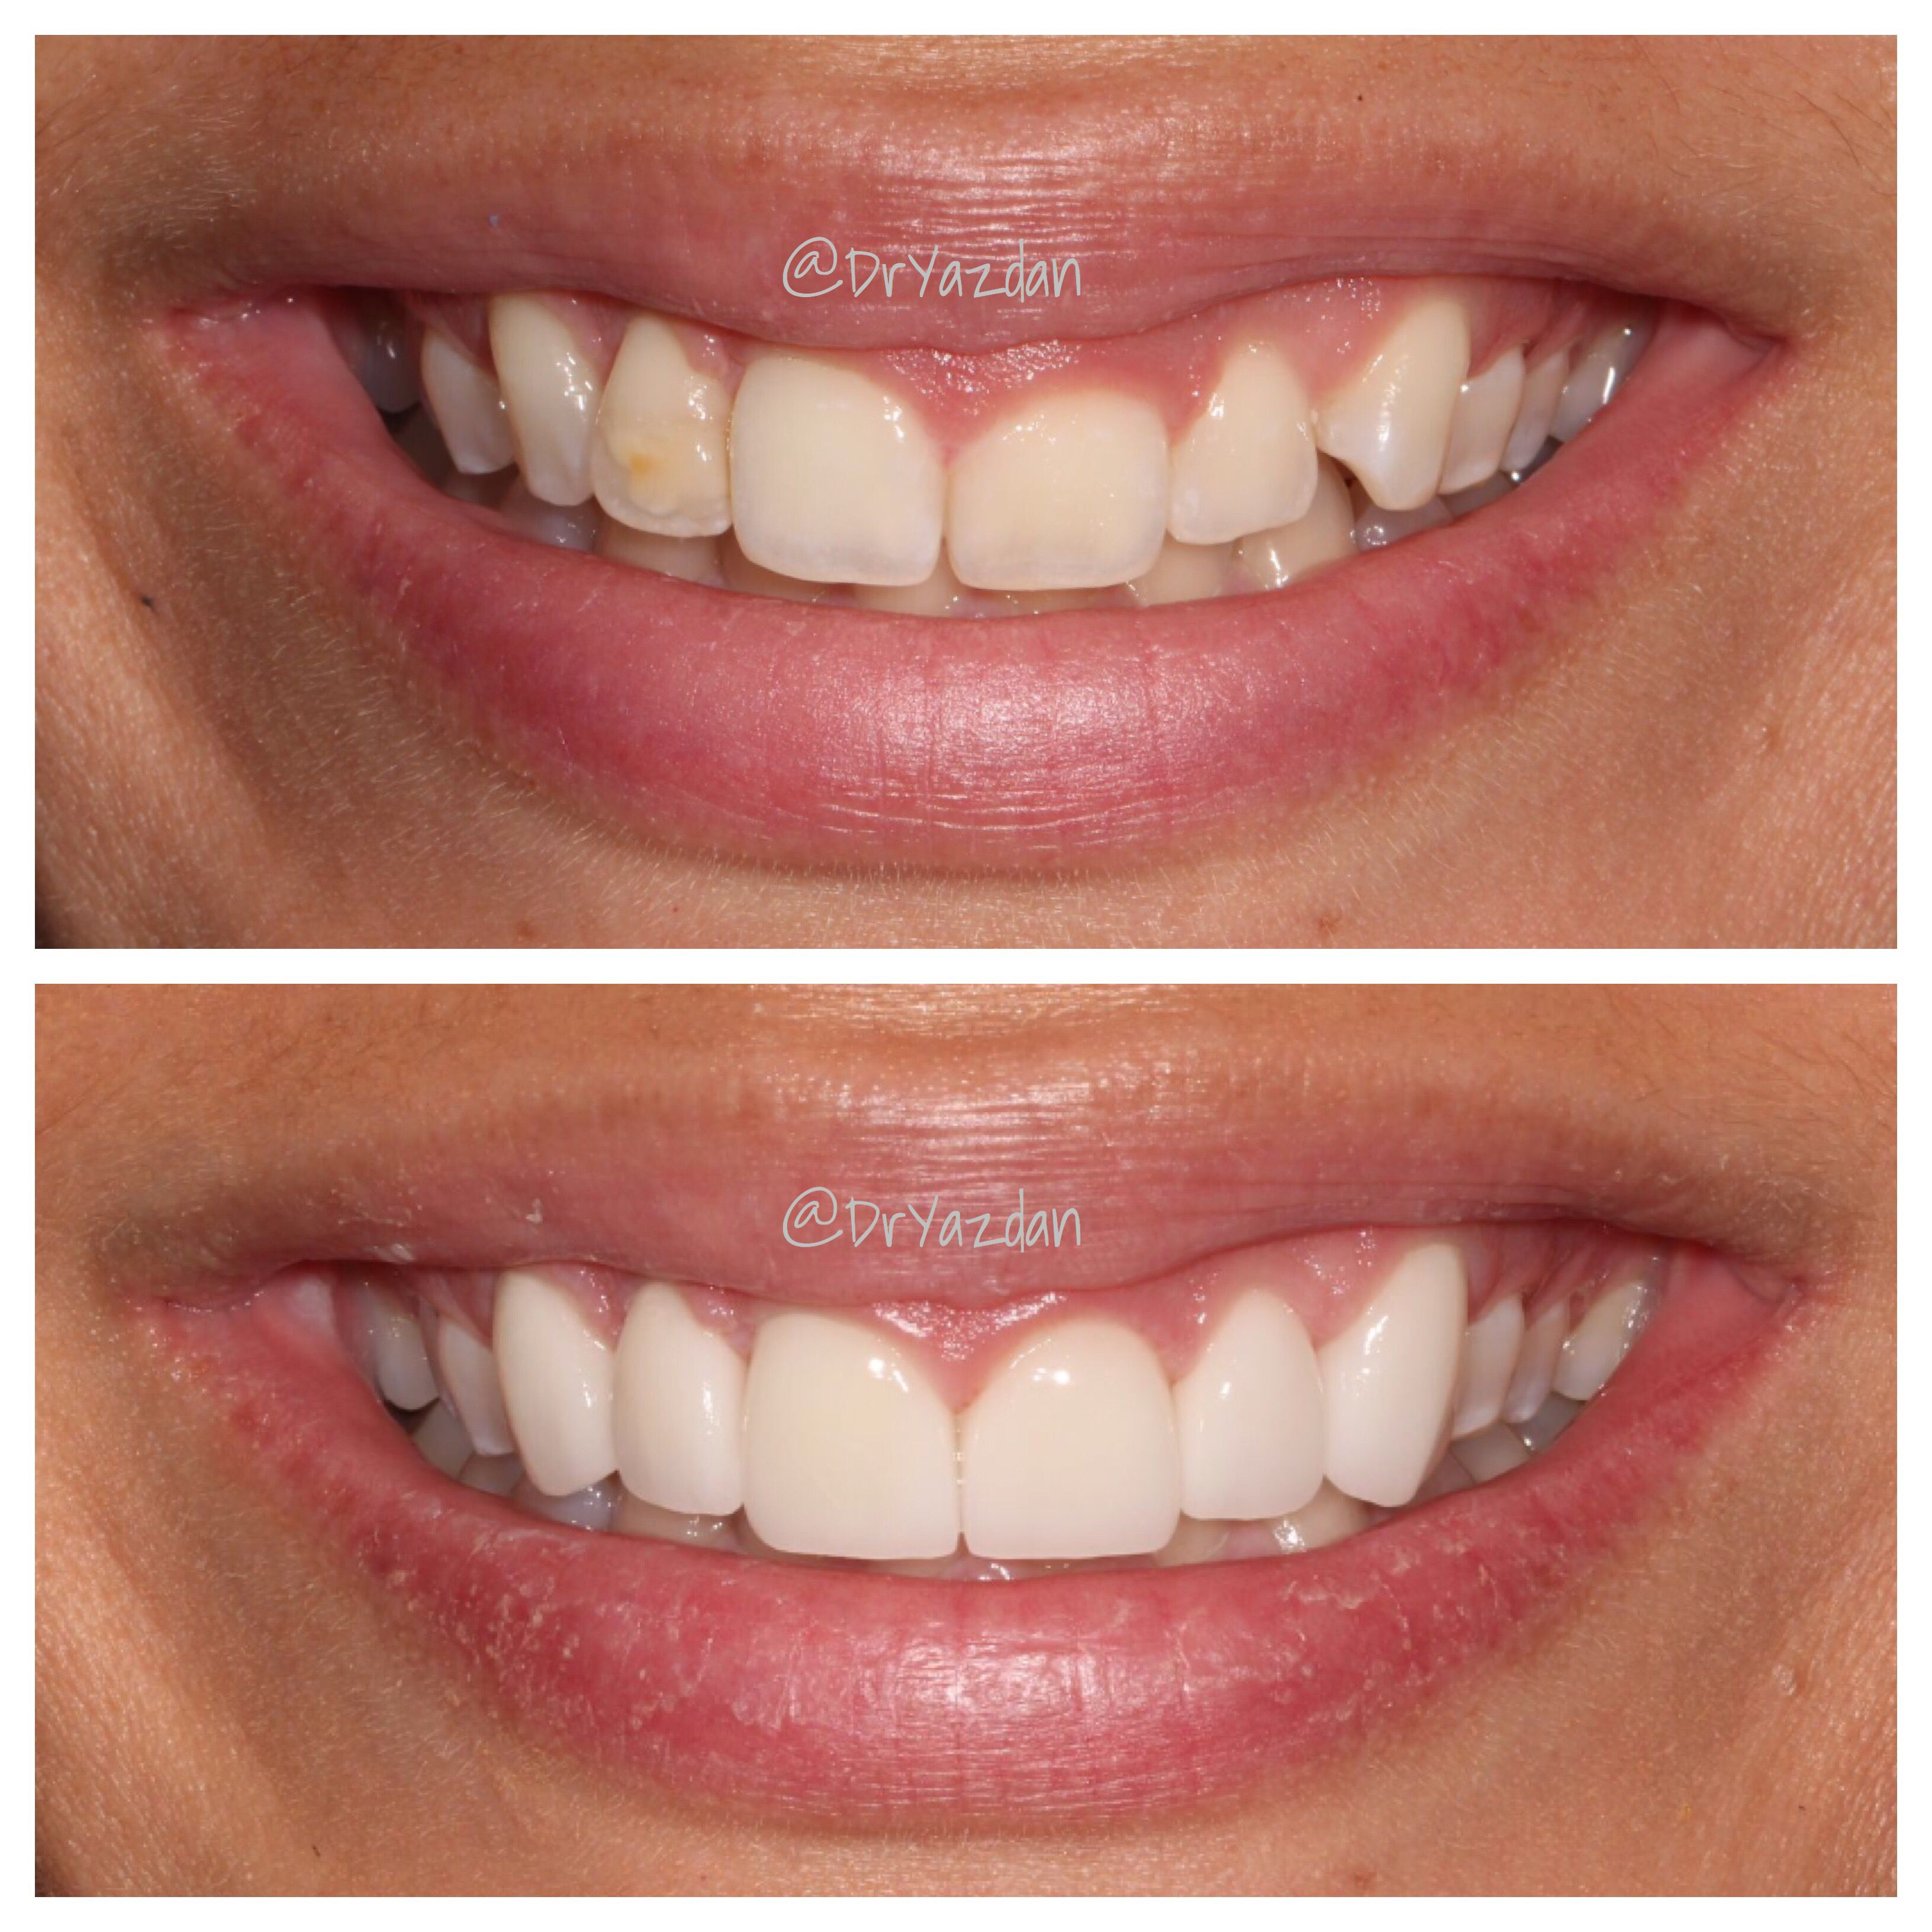 Smile makeover with just 7 porcelain veneers and some laser gum